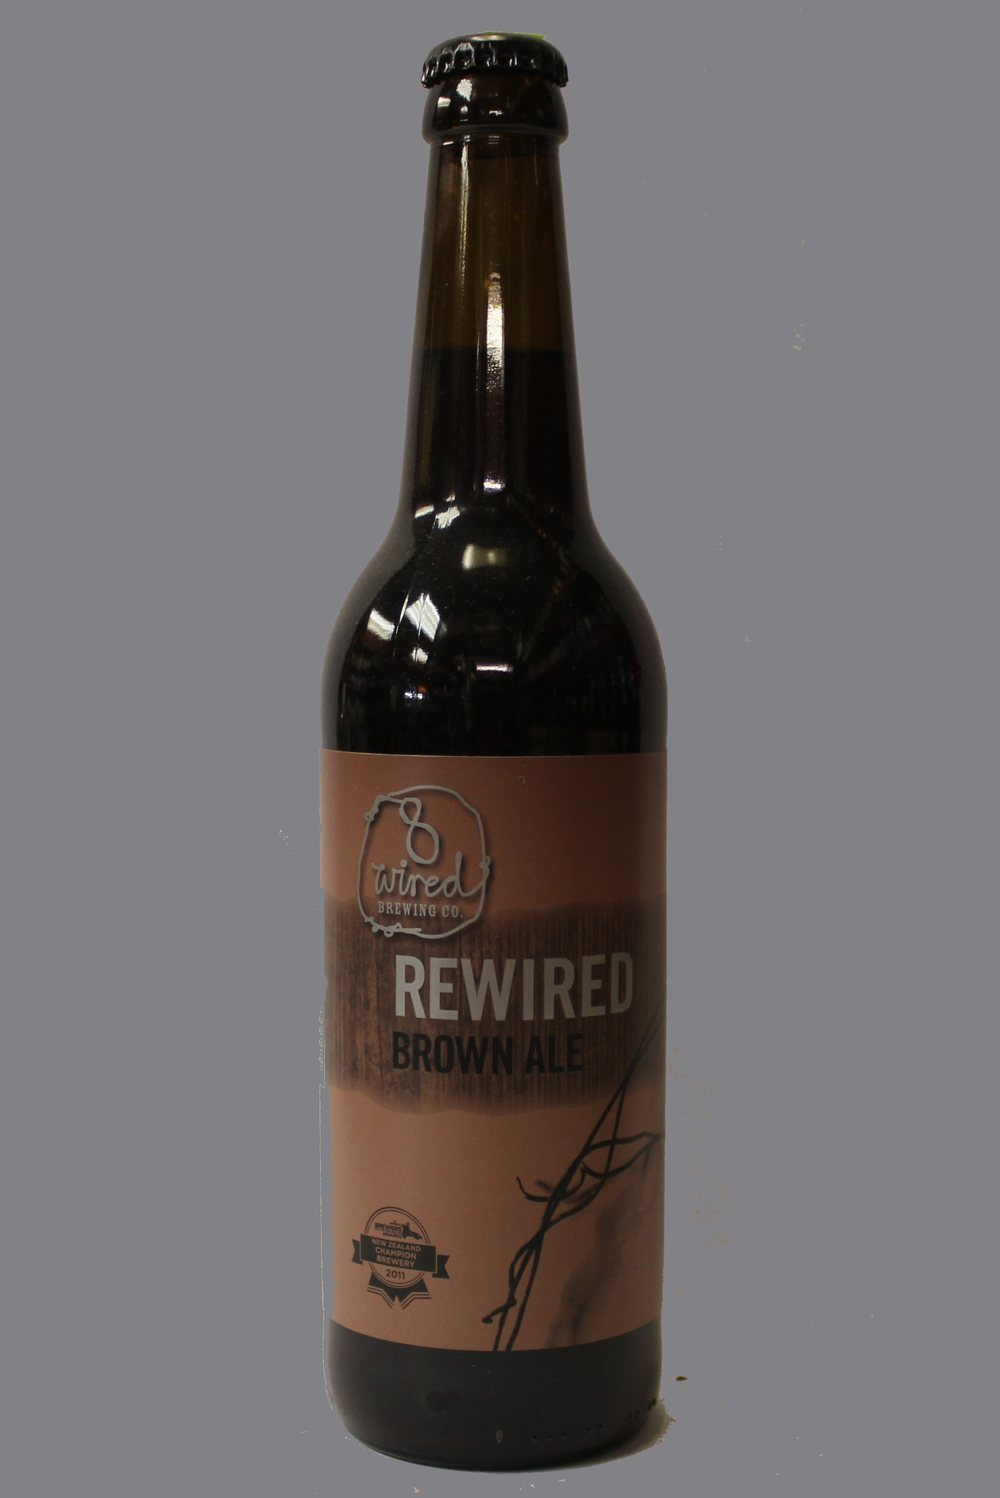 8WIRED-Rewired BrownAle.jpg